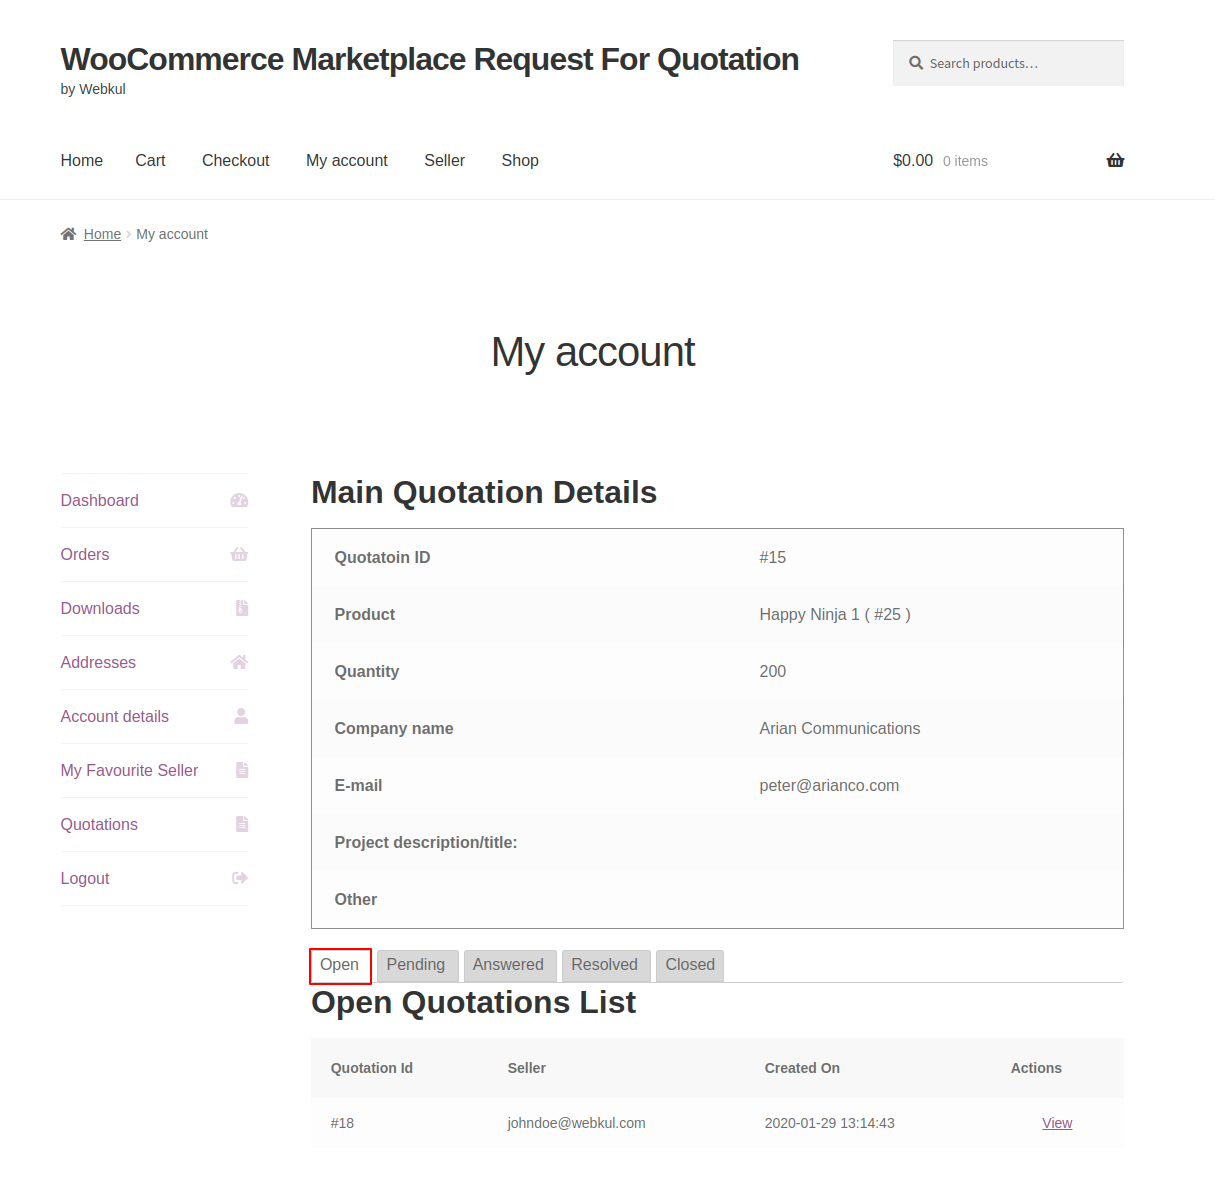 webkul-woocommerce-marketplace-request-for-quotation-customer-end-view-seller-quote-3